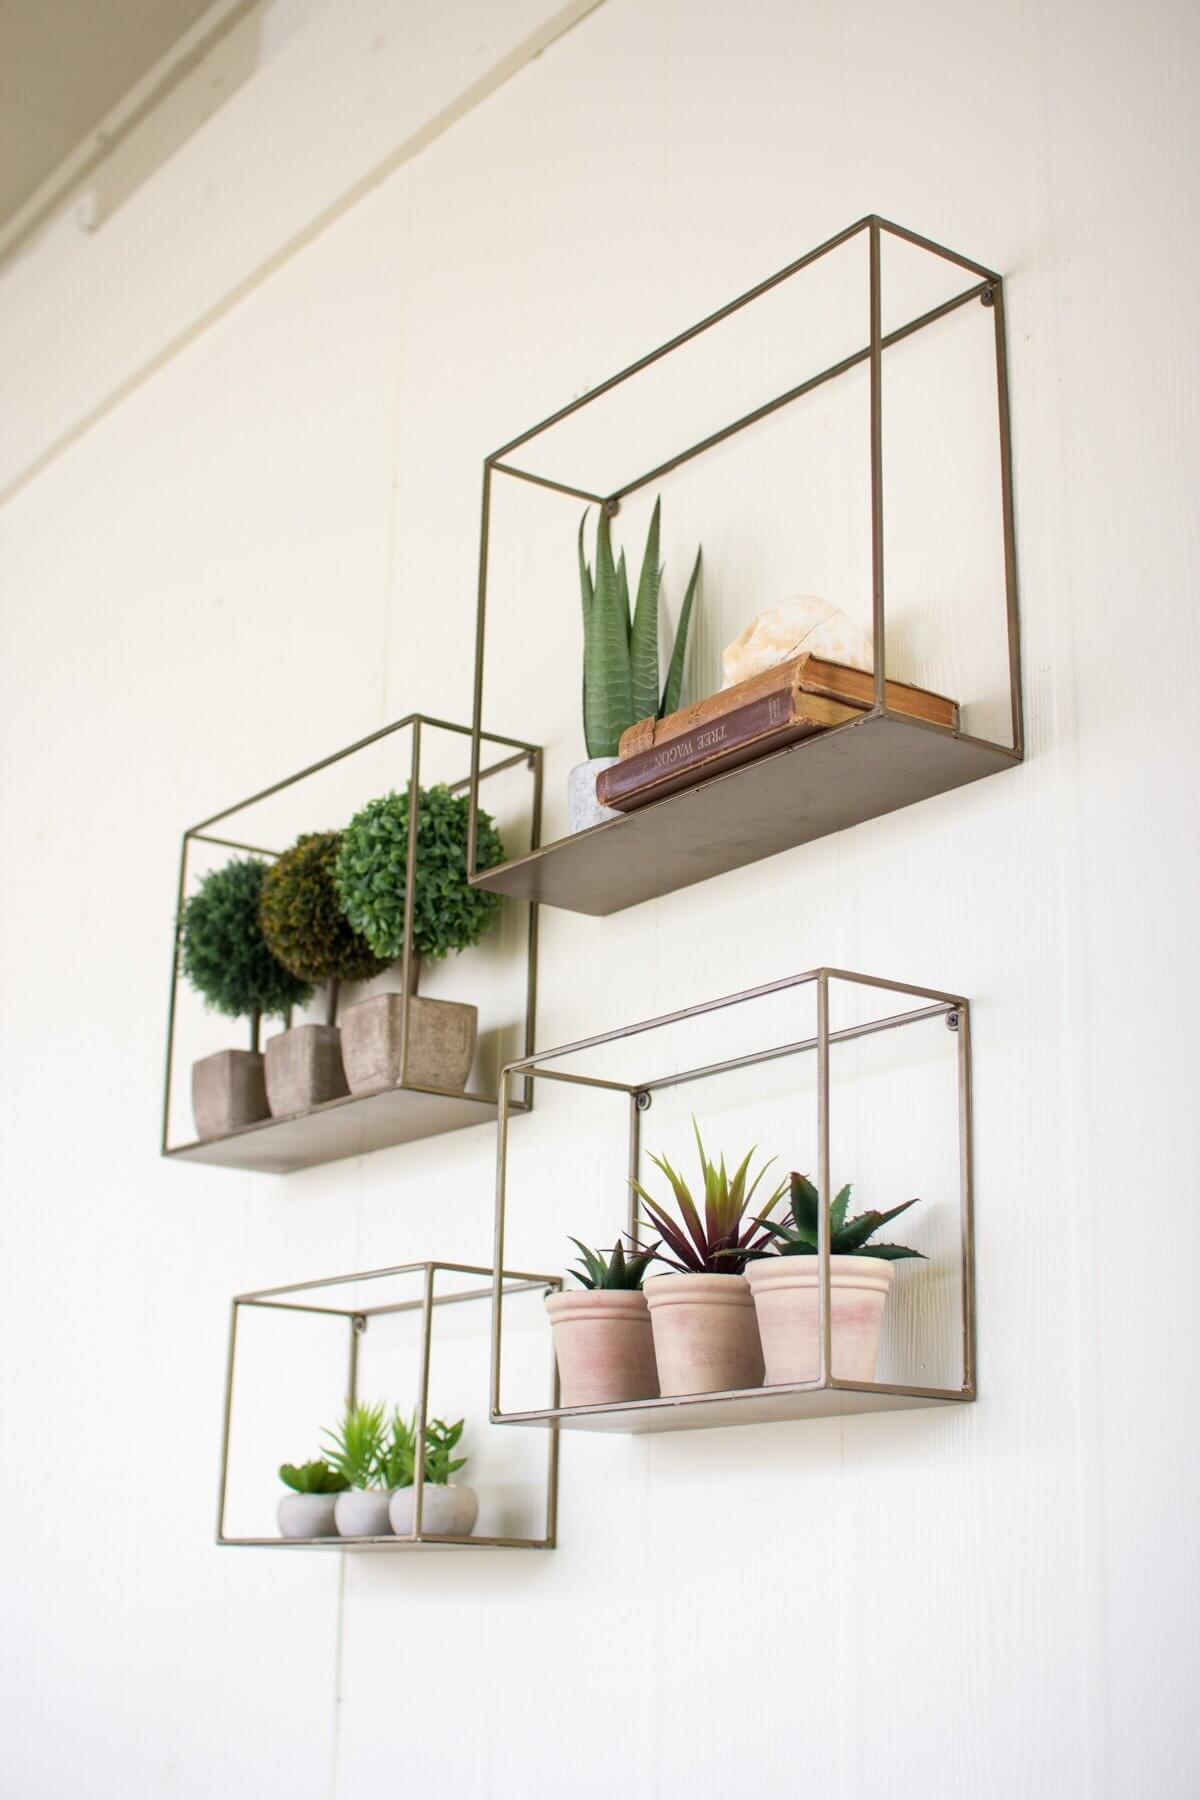 Minimalist Metal Shelving for a Charming Rustic Style